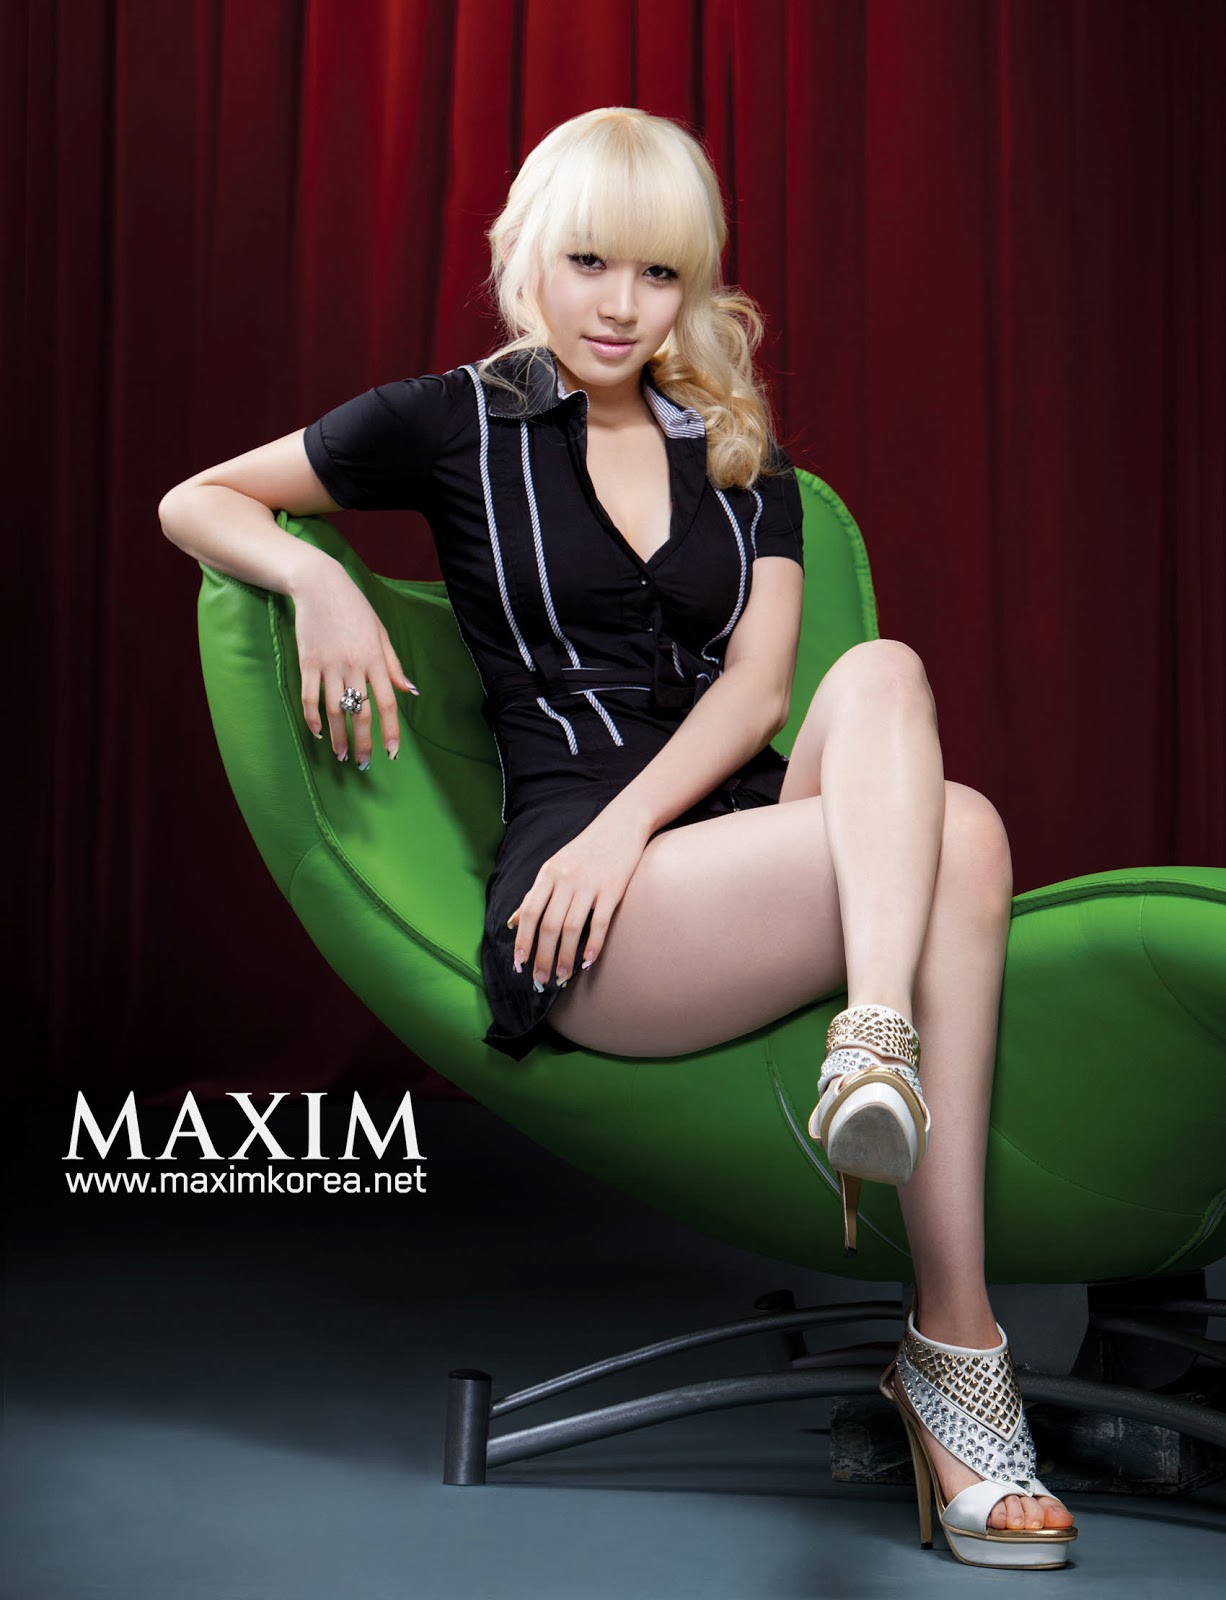 Girl's Day Hot Maxim Korea Pictures